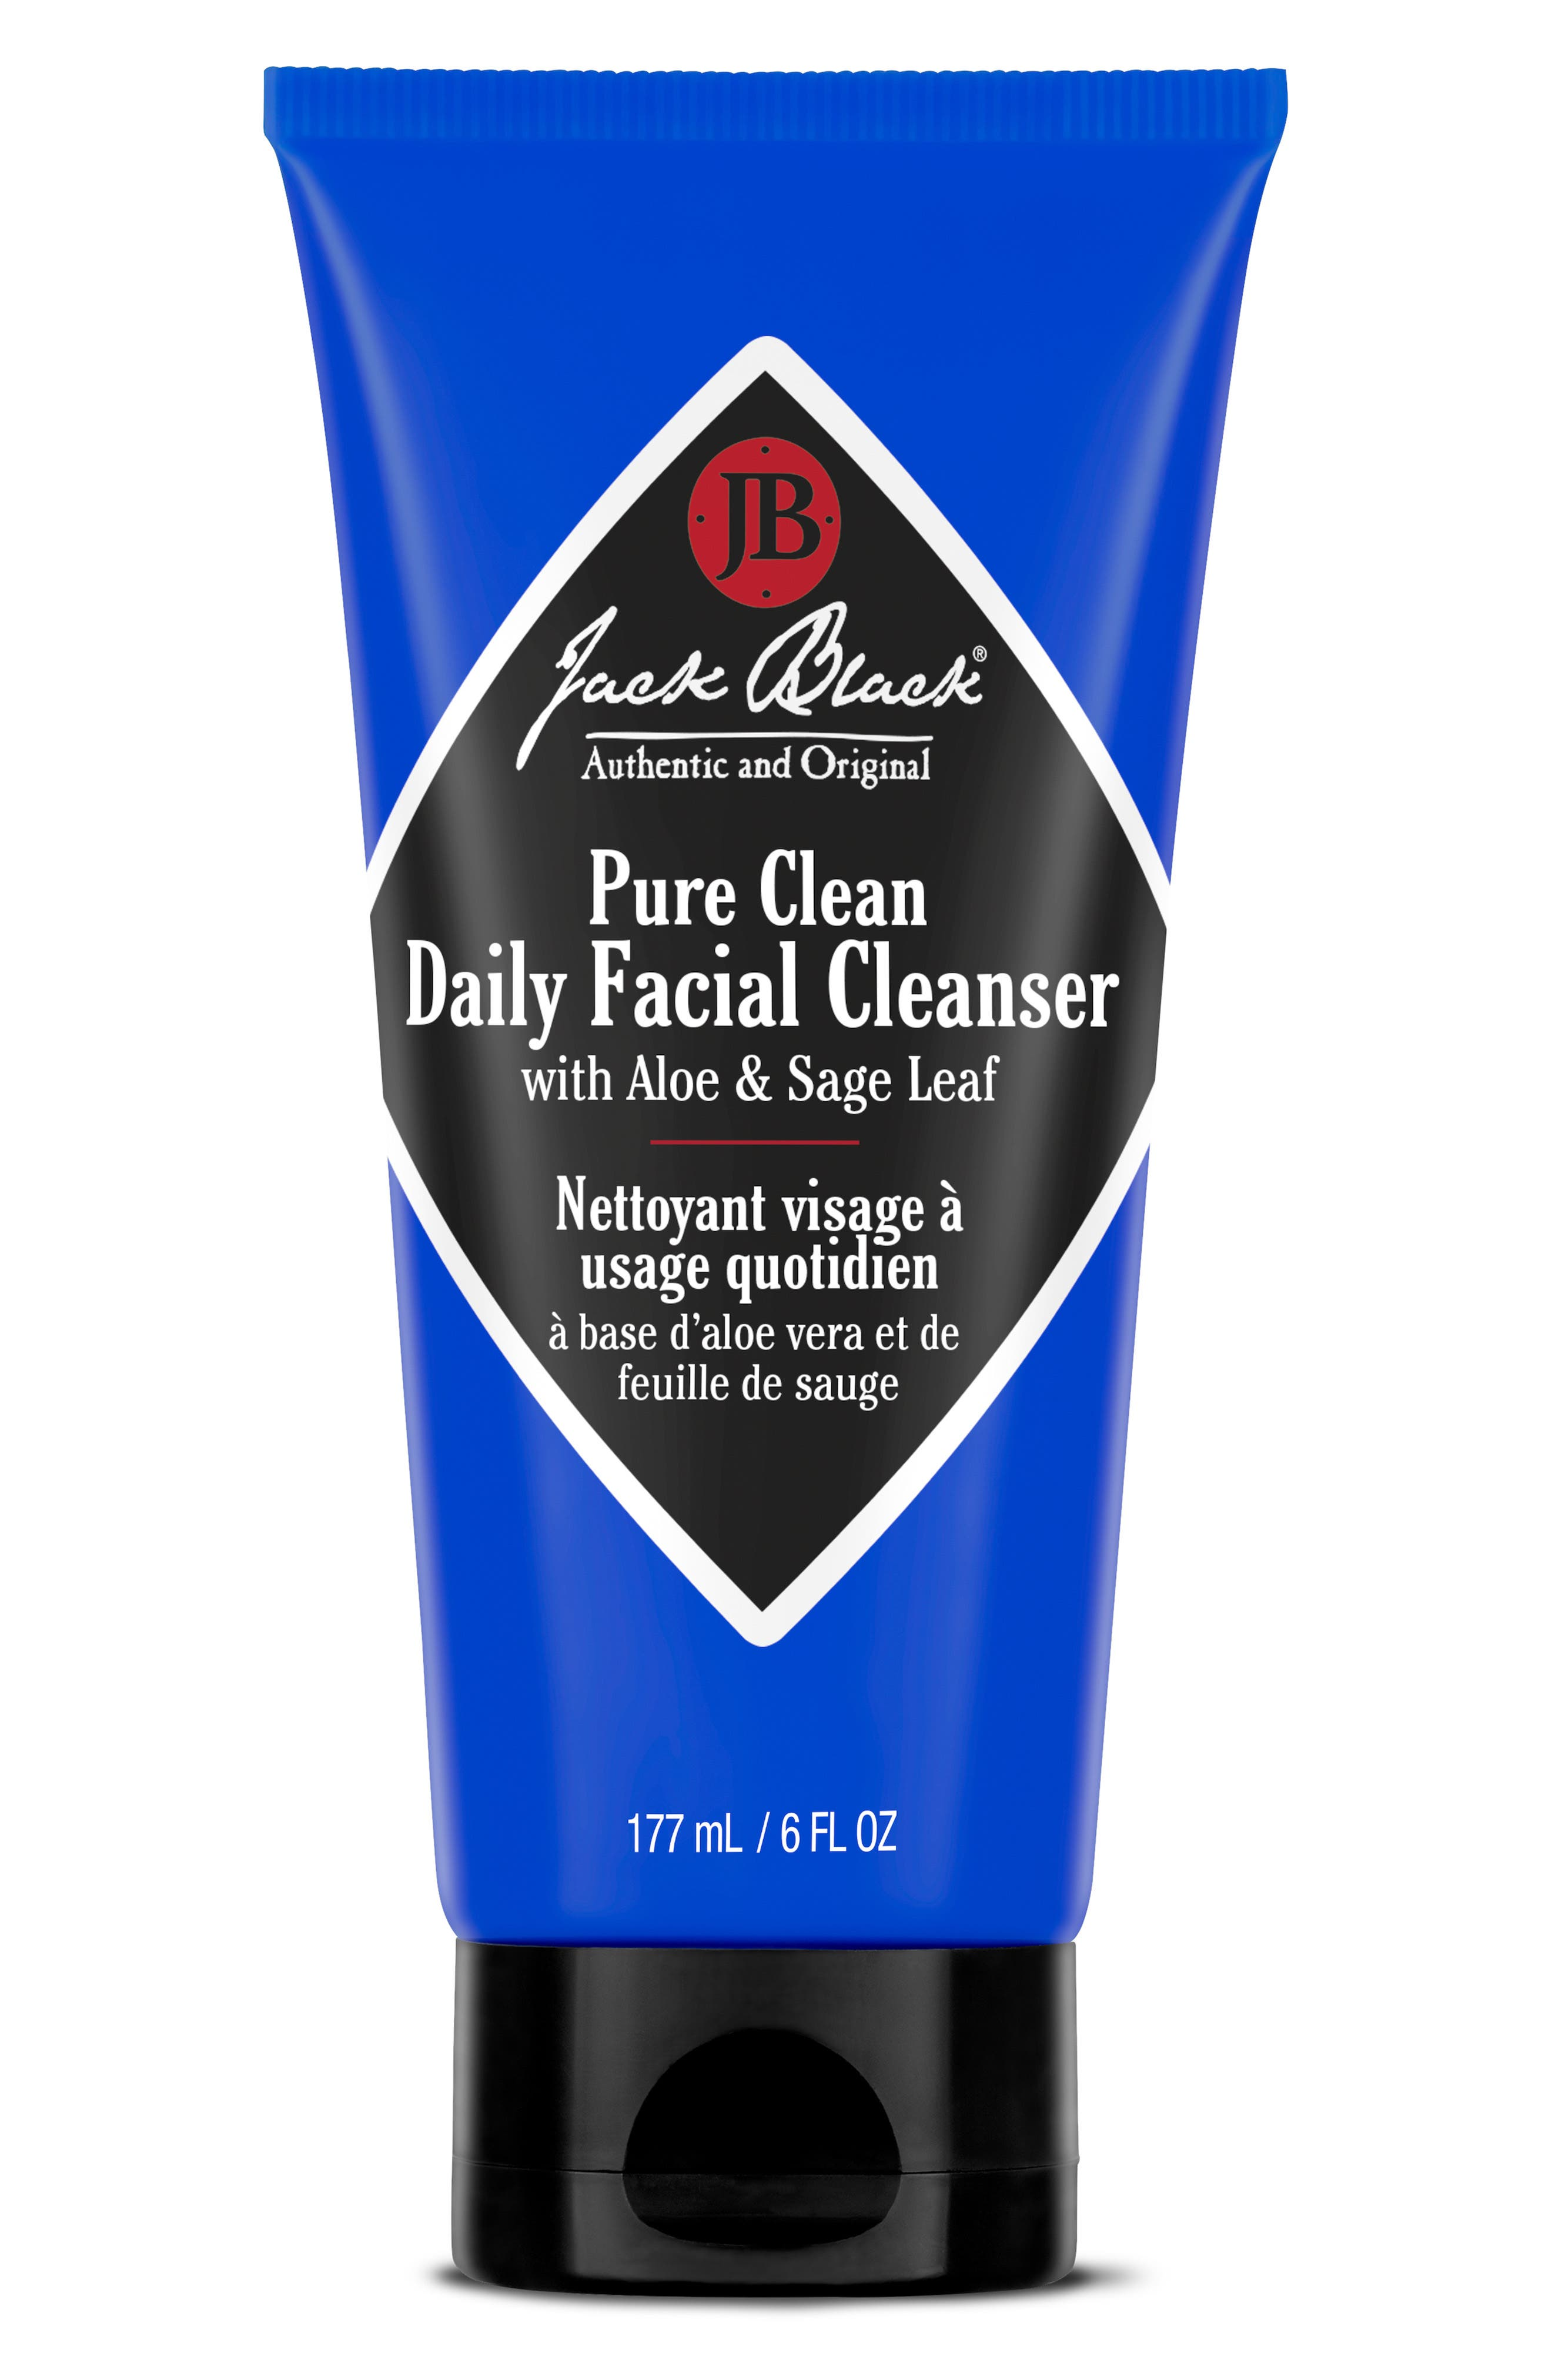 Image of Jack Black Pure Clean Daily Facial Cleanser